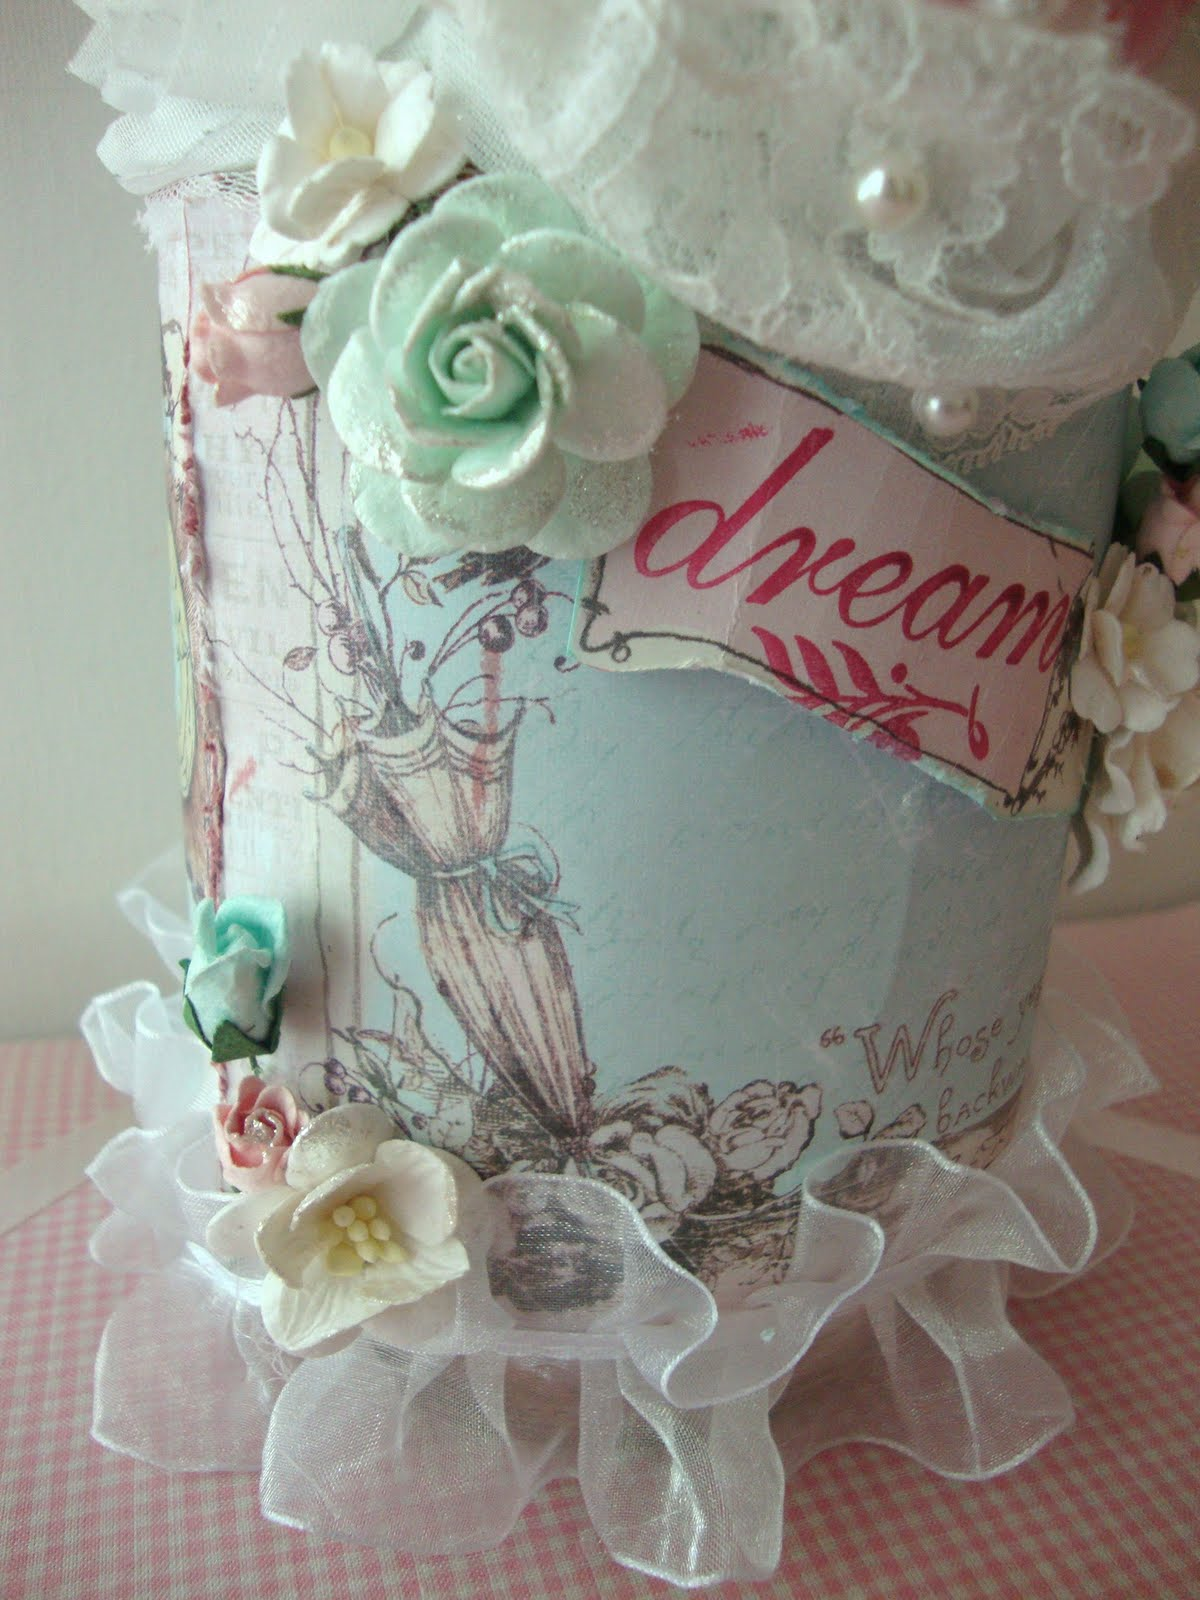 ShabbyChicJCouture : Shabby Chic Altered Glass Jar Using